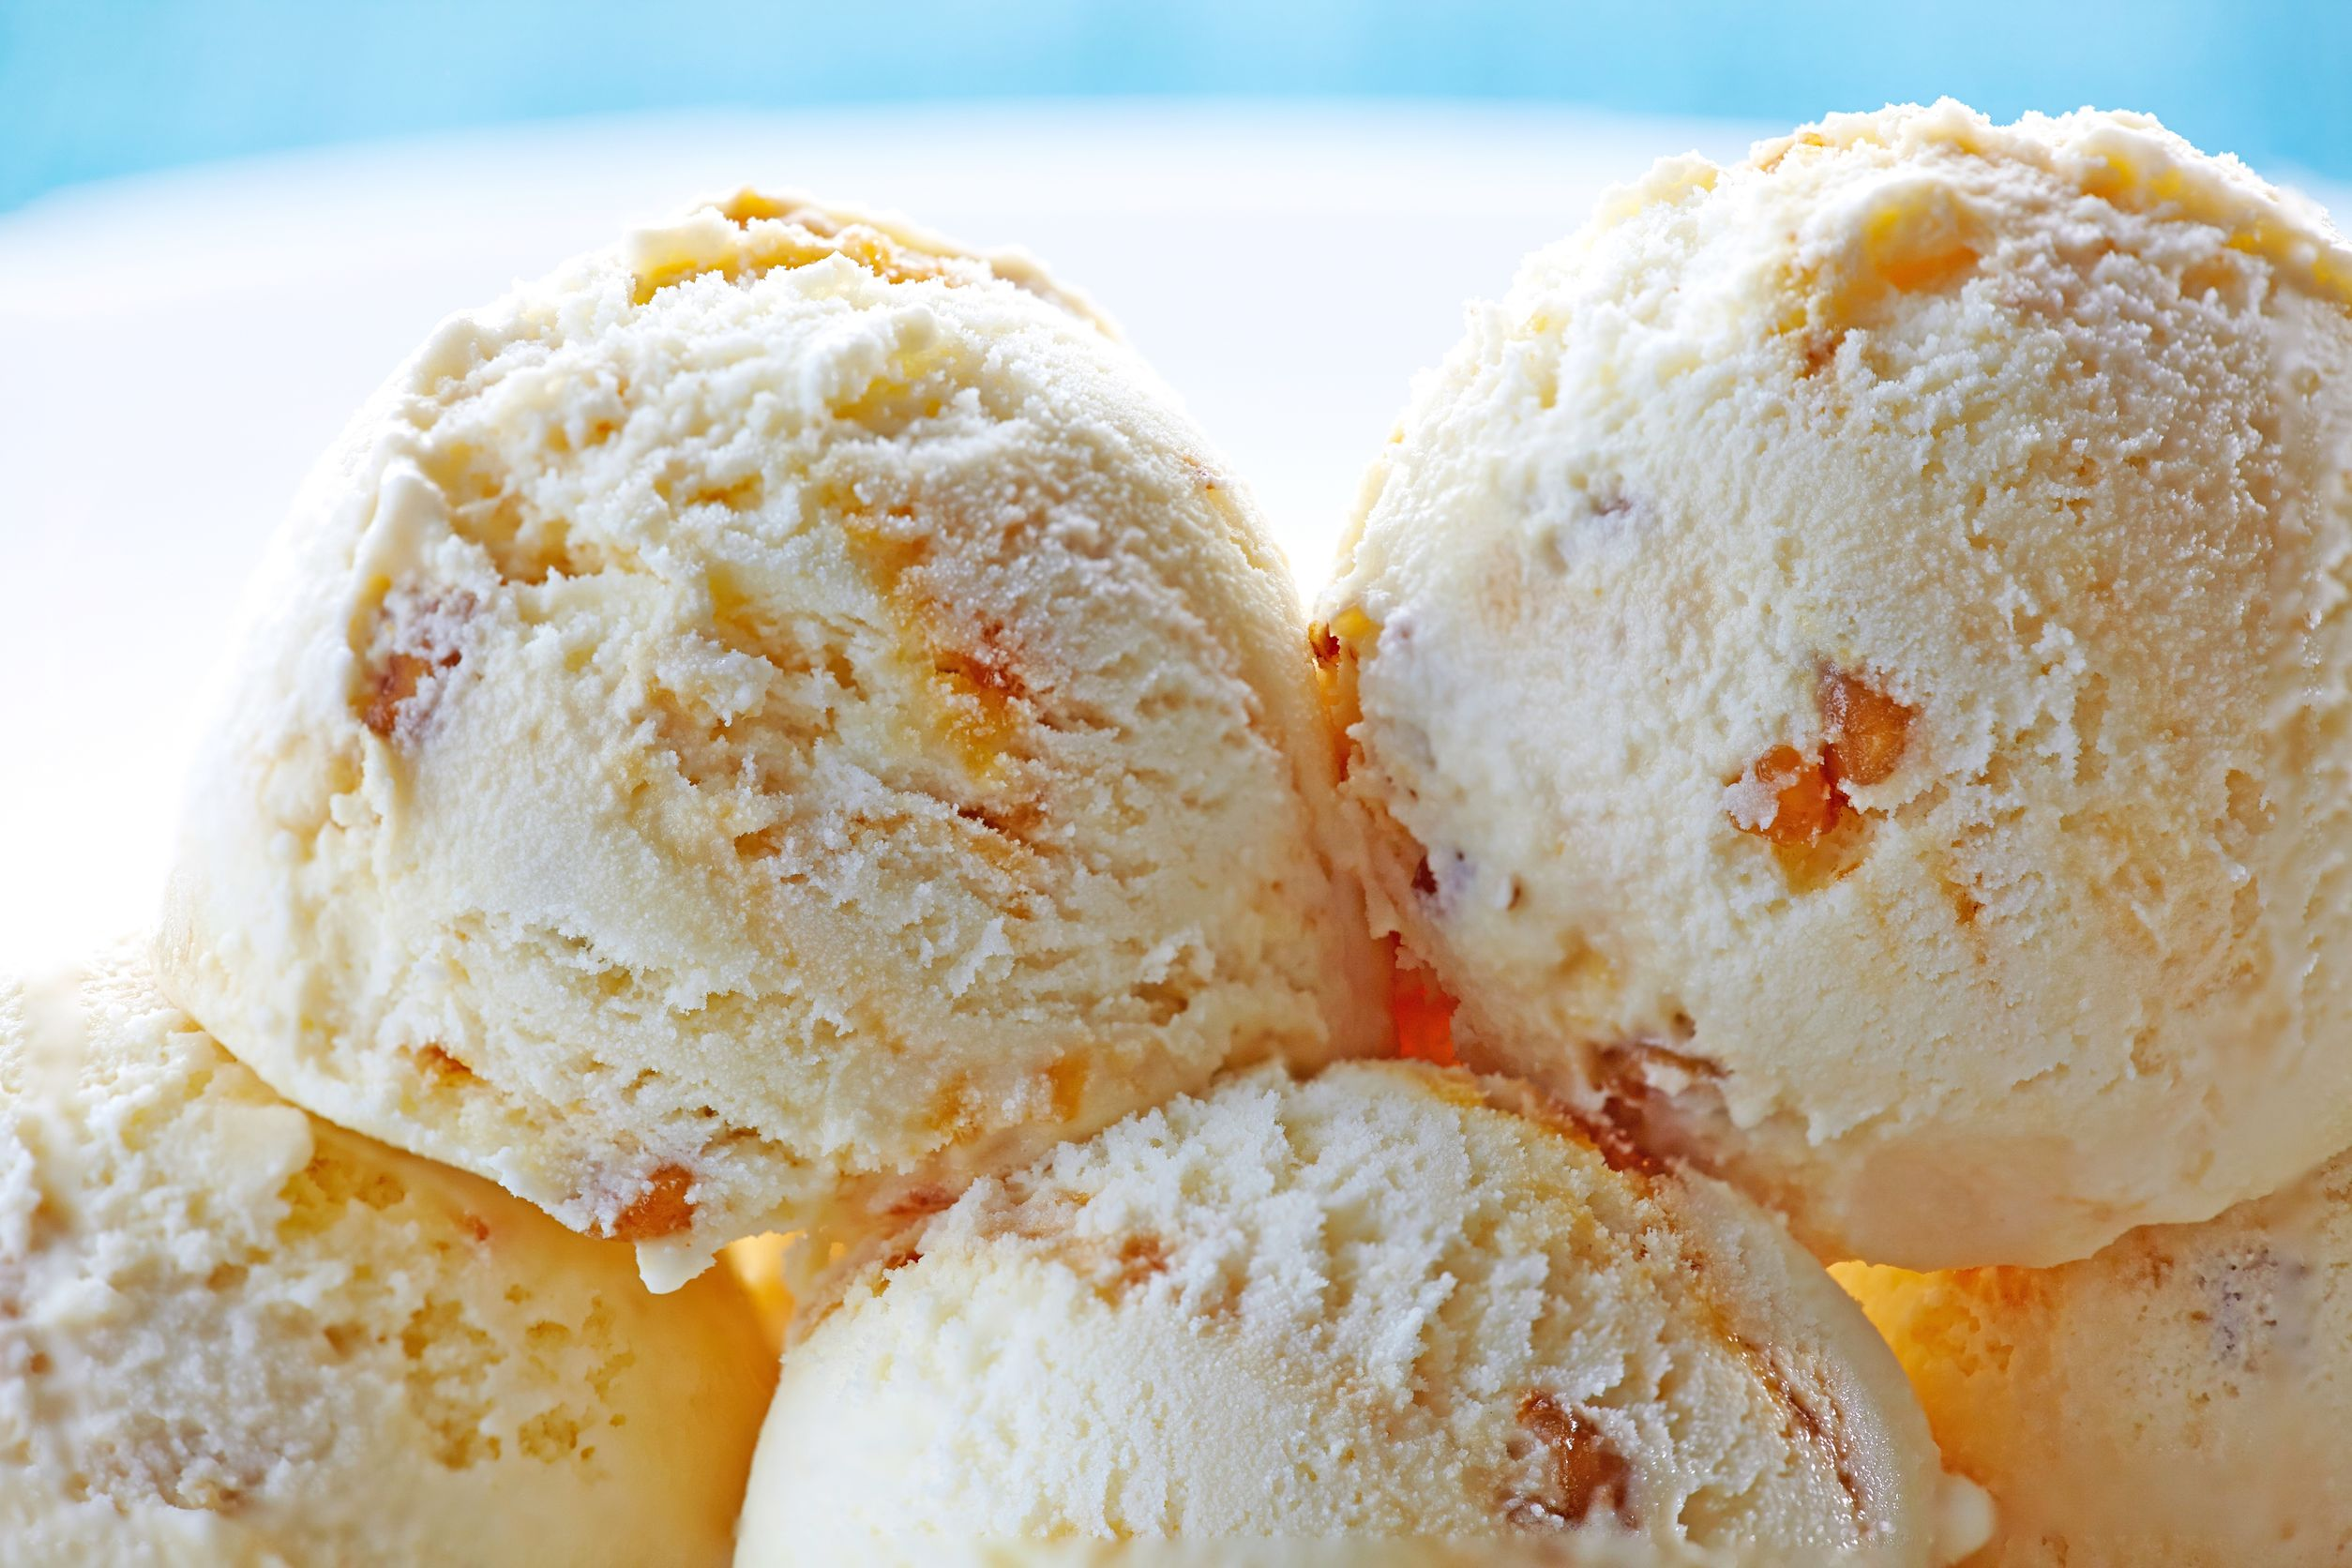 new zealand vanilla ice cream 123rf